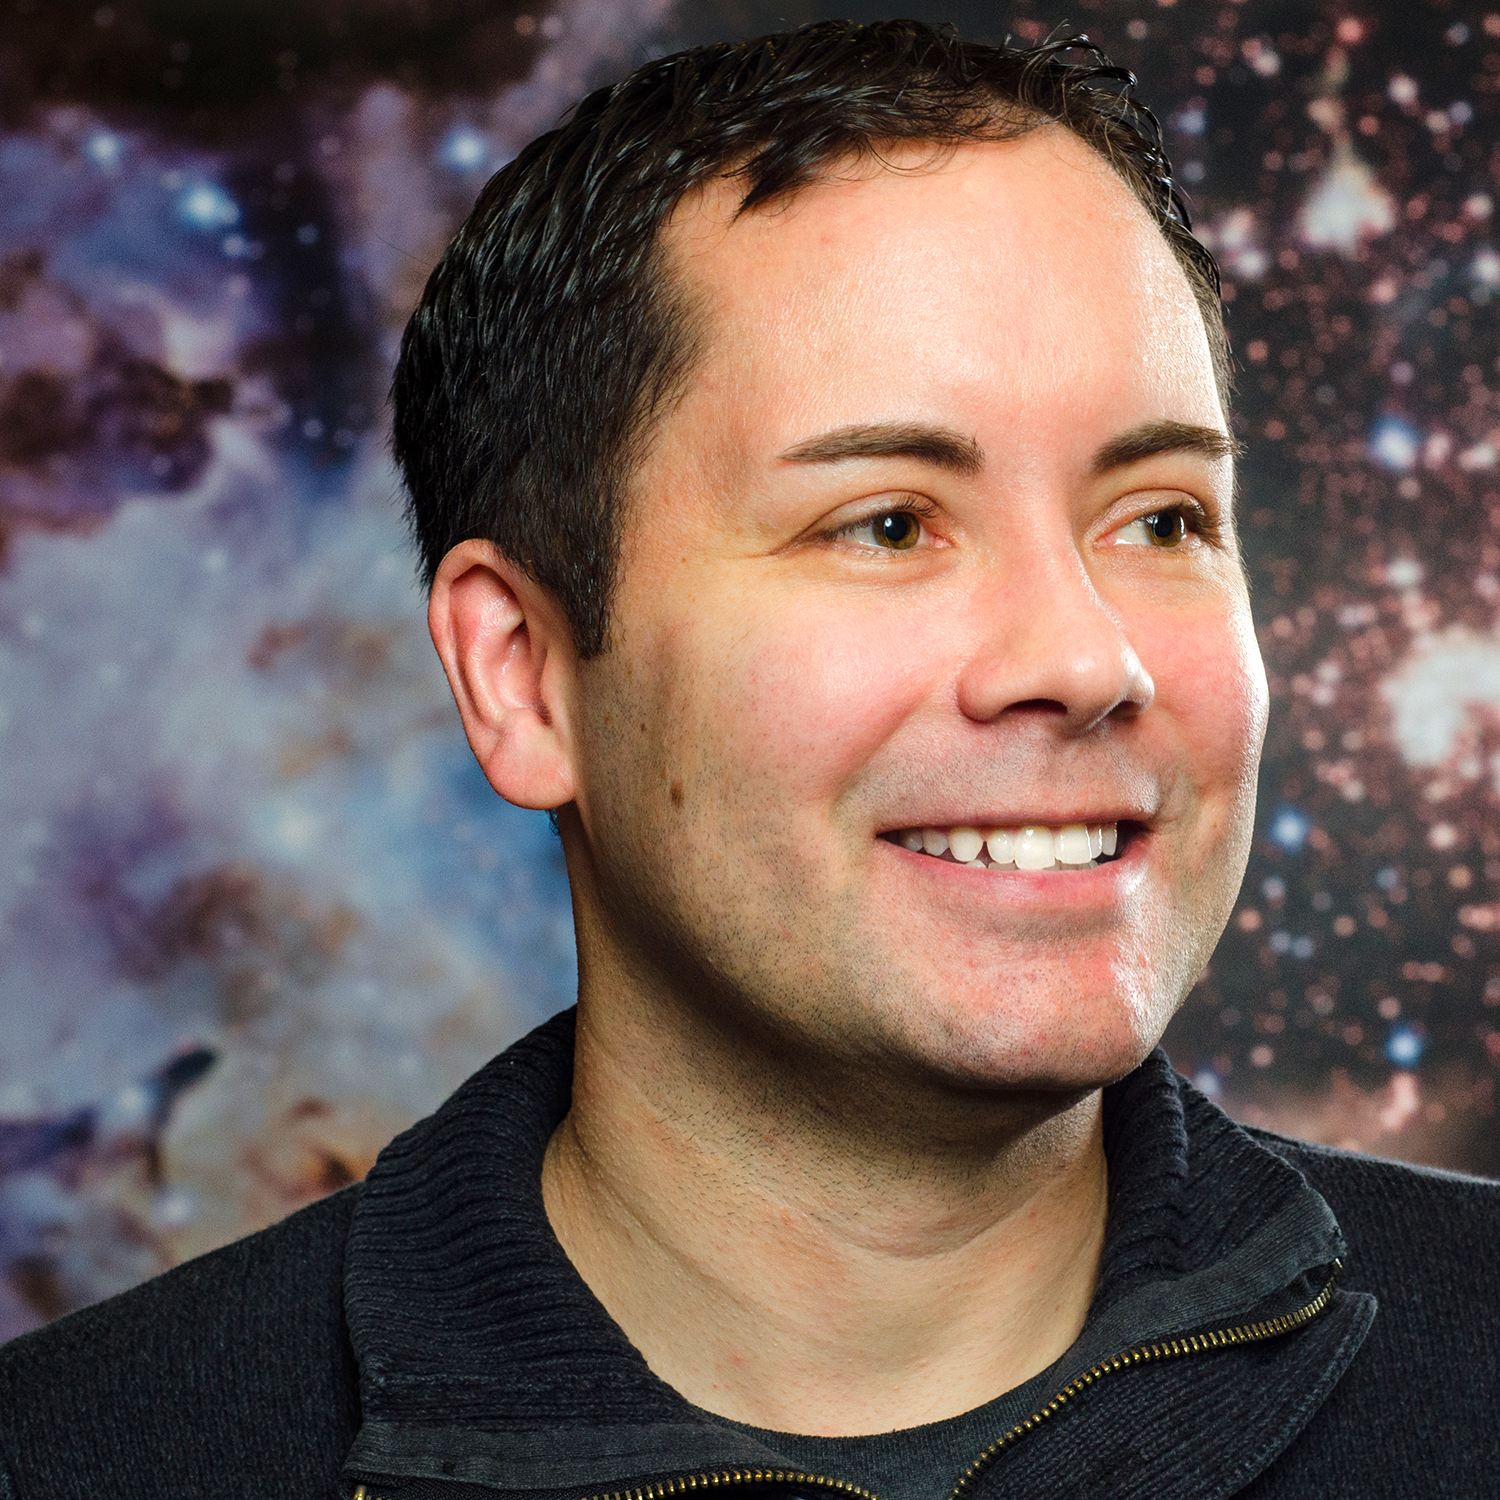 Dr. Brandon Lawton - Dr. Brandon Lawton is an astronomer in the Office of Public Outreach at the Space Telescope Science Institute (STScI). He got his PhD in astronomy at New Mexico State University in 2008, studying mysterious dust signatures in other galaxies. This was followed by a postdoctoral position at STScI where he used Spitzer Space Telescope data to explore star formation in our neighboring galaxies, the Magellanic Clouds. Dr. Lawton has been a member of the Office of Public Outreach since 2011 where he works with the Hubble, JWST, and WFIRST outreach and communications teams, as well as with the broader NASA science education community, to deliver accurate cutting-edge science content to students, educators, and the general public.